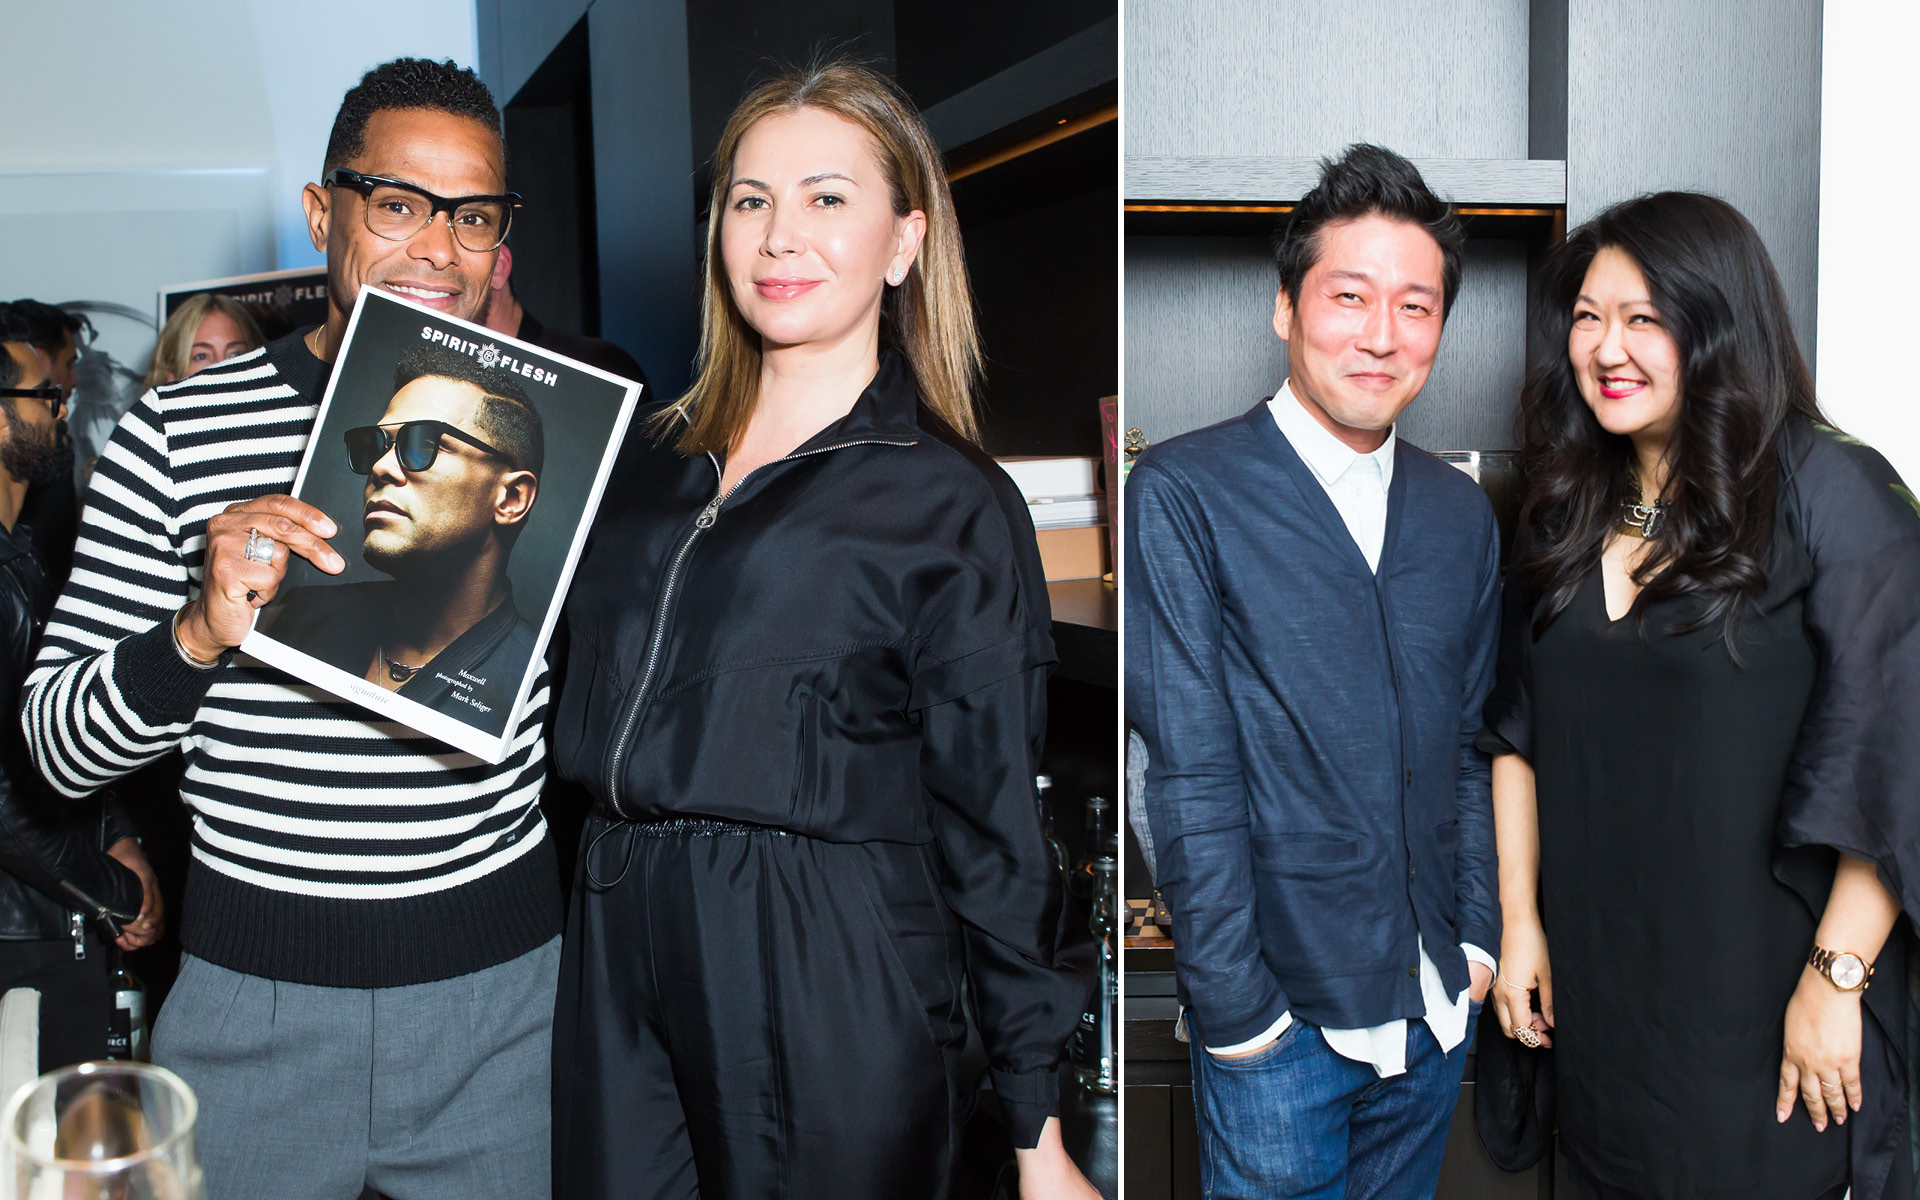 Maxwell, Inga Rosenberg, Susan Shin and guest, at Edition Hotel, celebrating Maxwell birthday and Spirit & Flesh magazine cover story by Mark Seliger